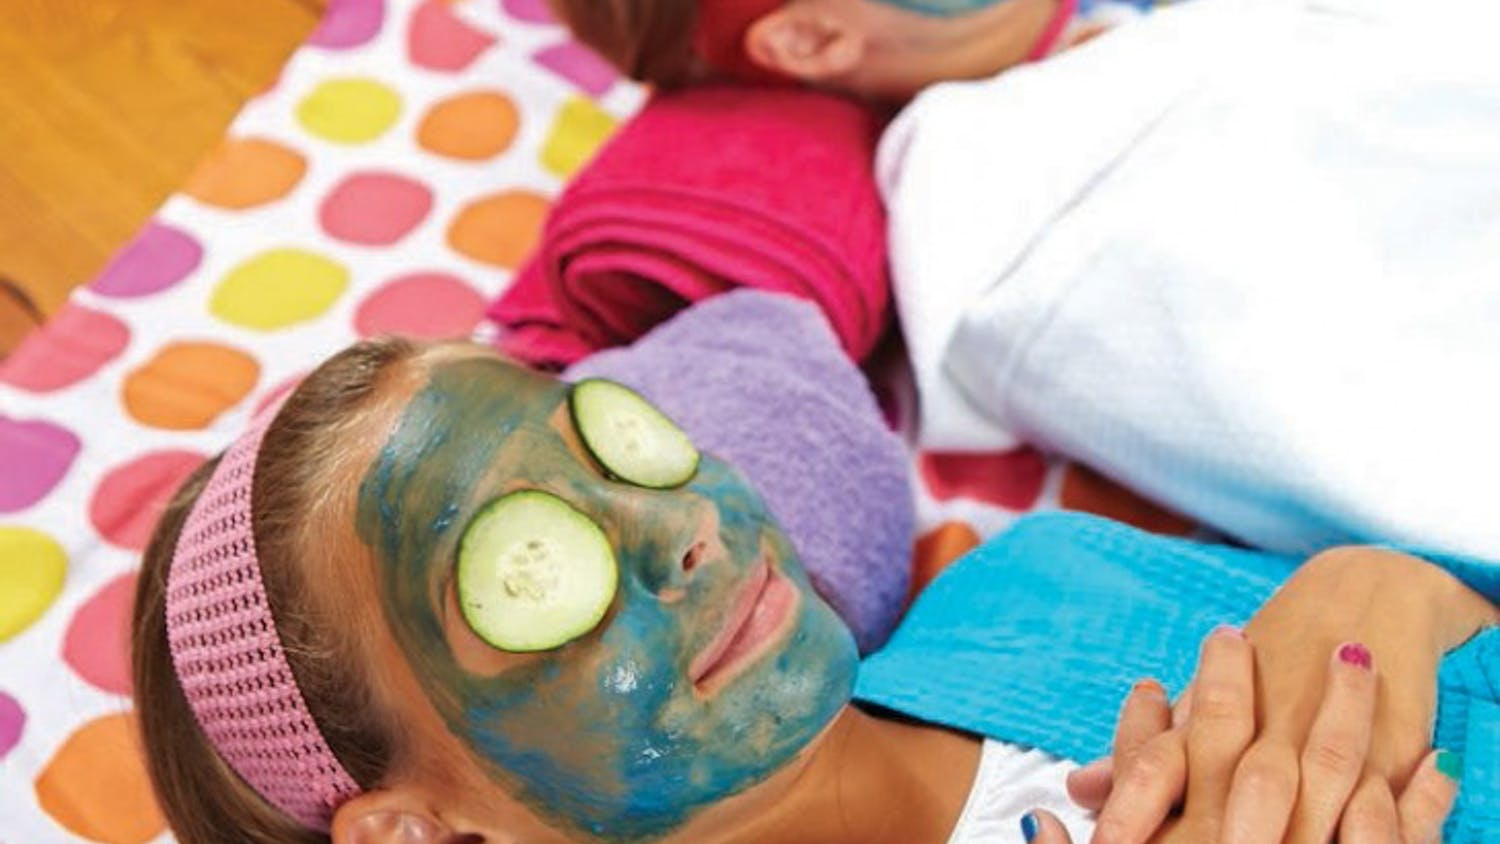 Have guests paint each other's faces with a homemade facial mask - then relax with some cooling cucumber slices resting on guests' eyes. (Ronnie Andren/FamilyFun Magazine/MCT)